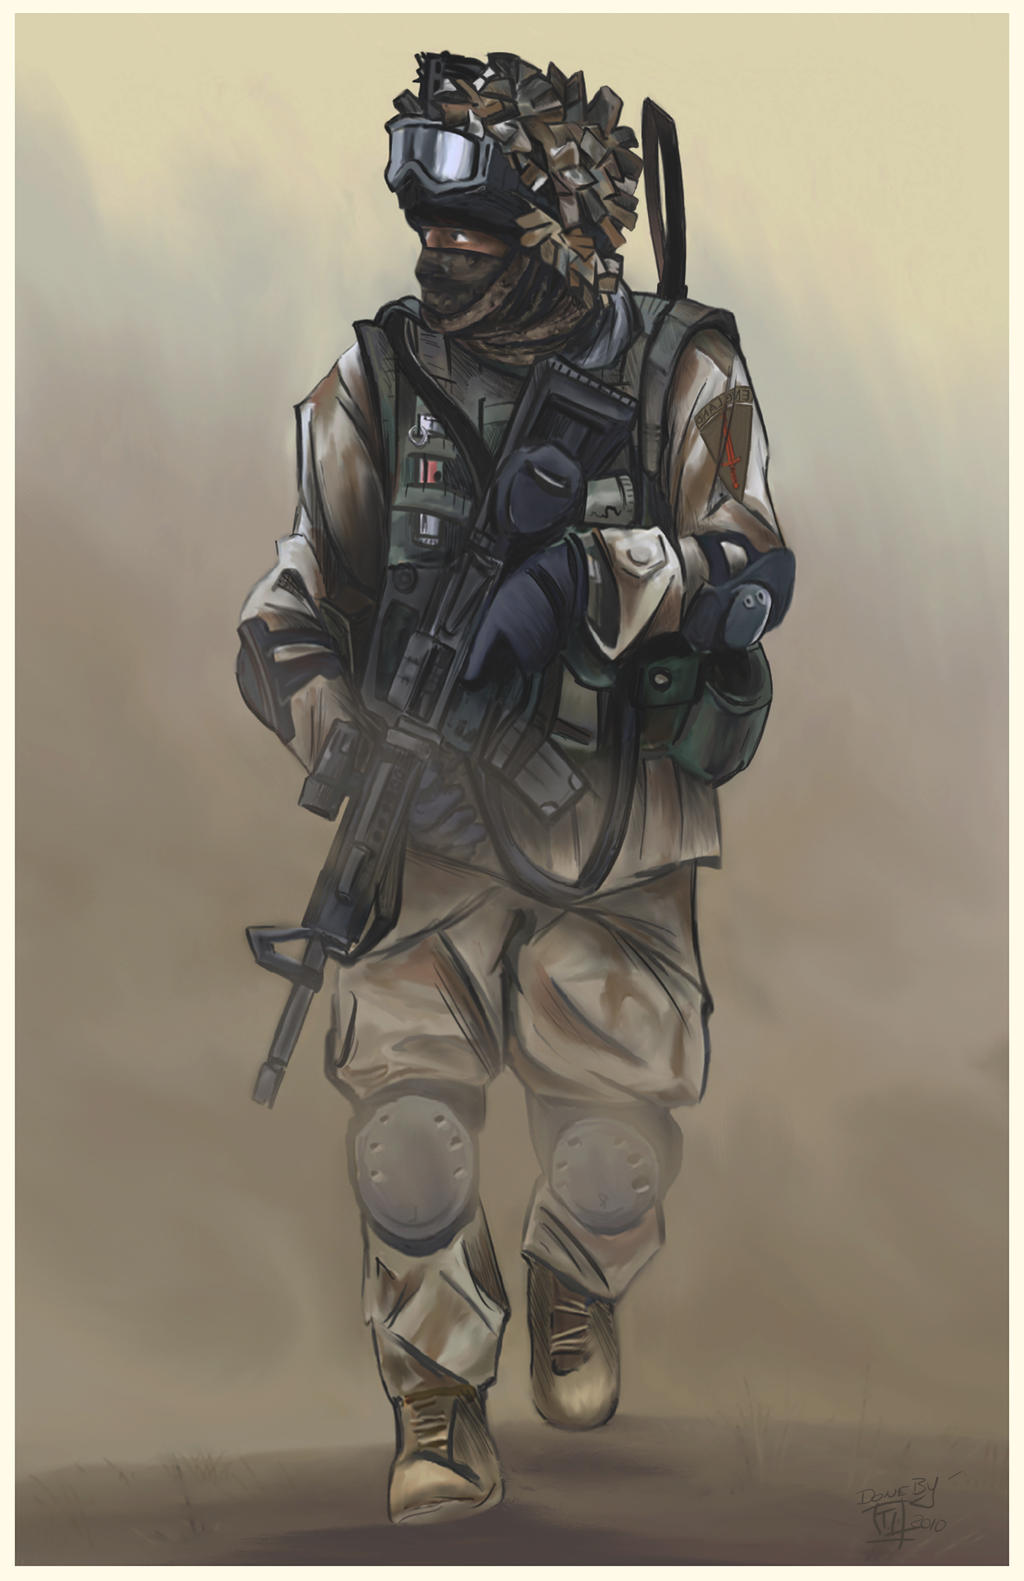 BRITISH SPECIAL FORCES 2010 by KOKORONIN